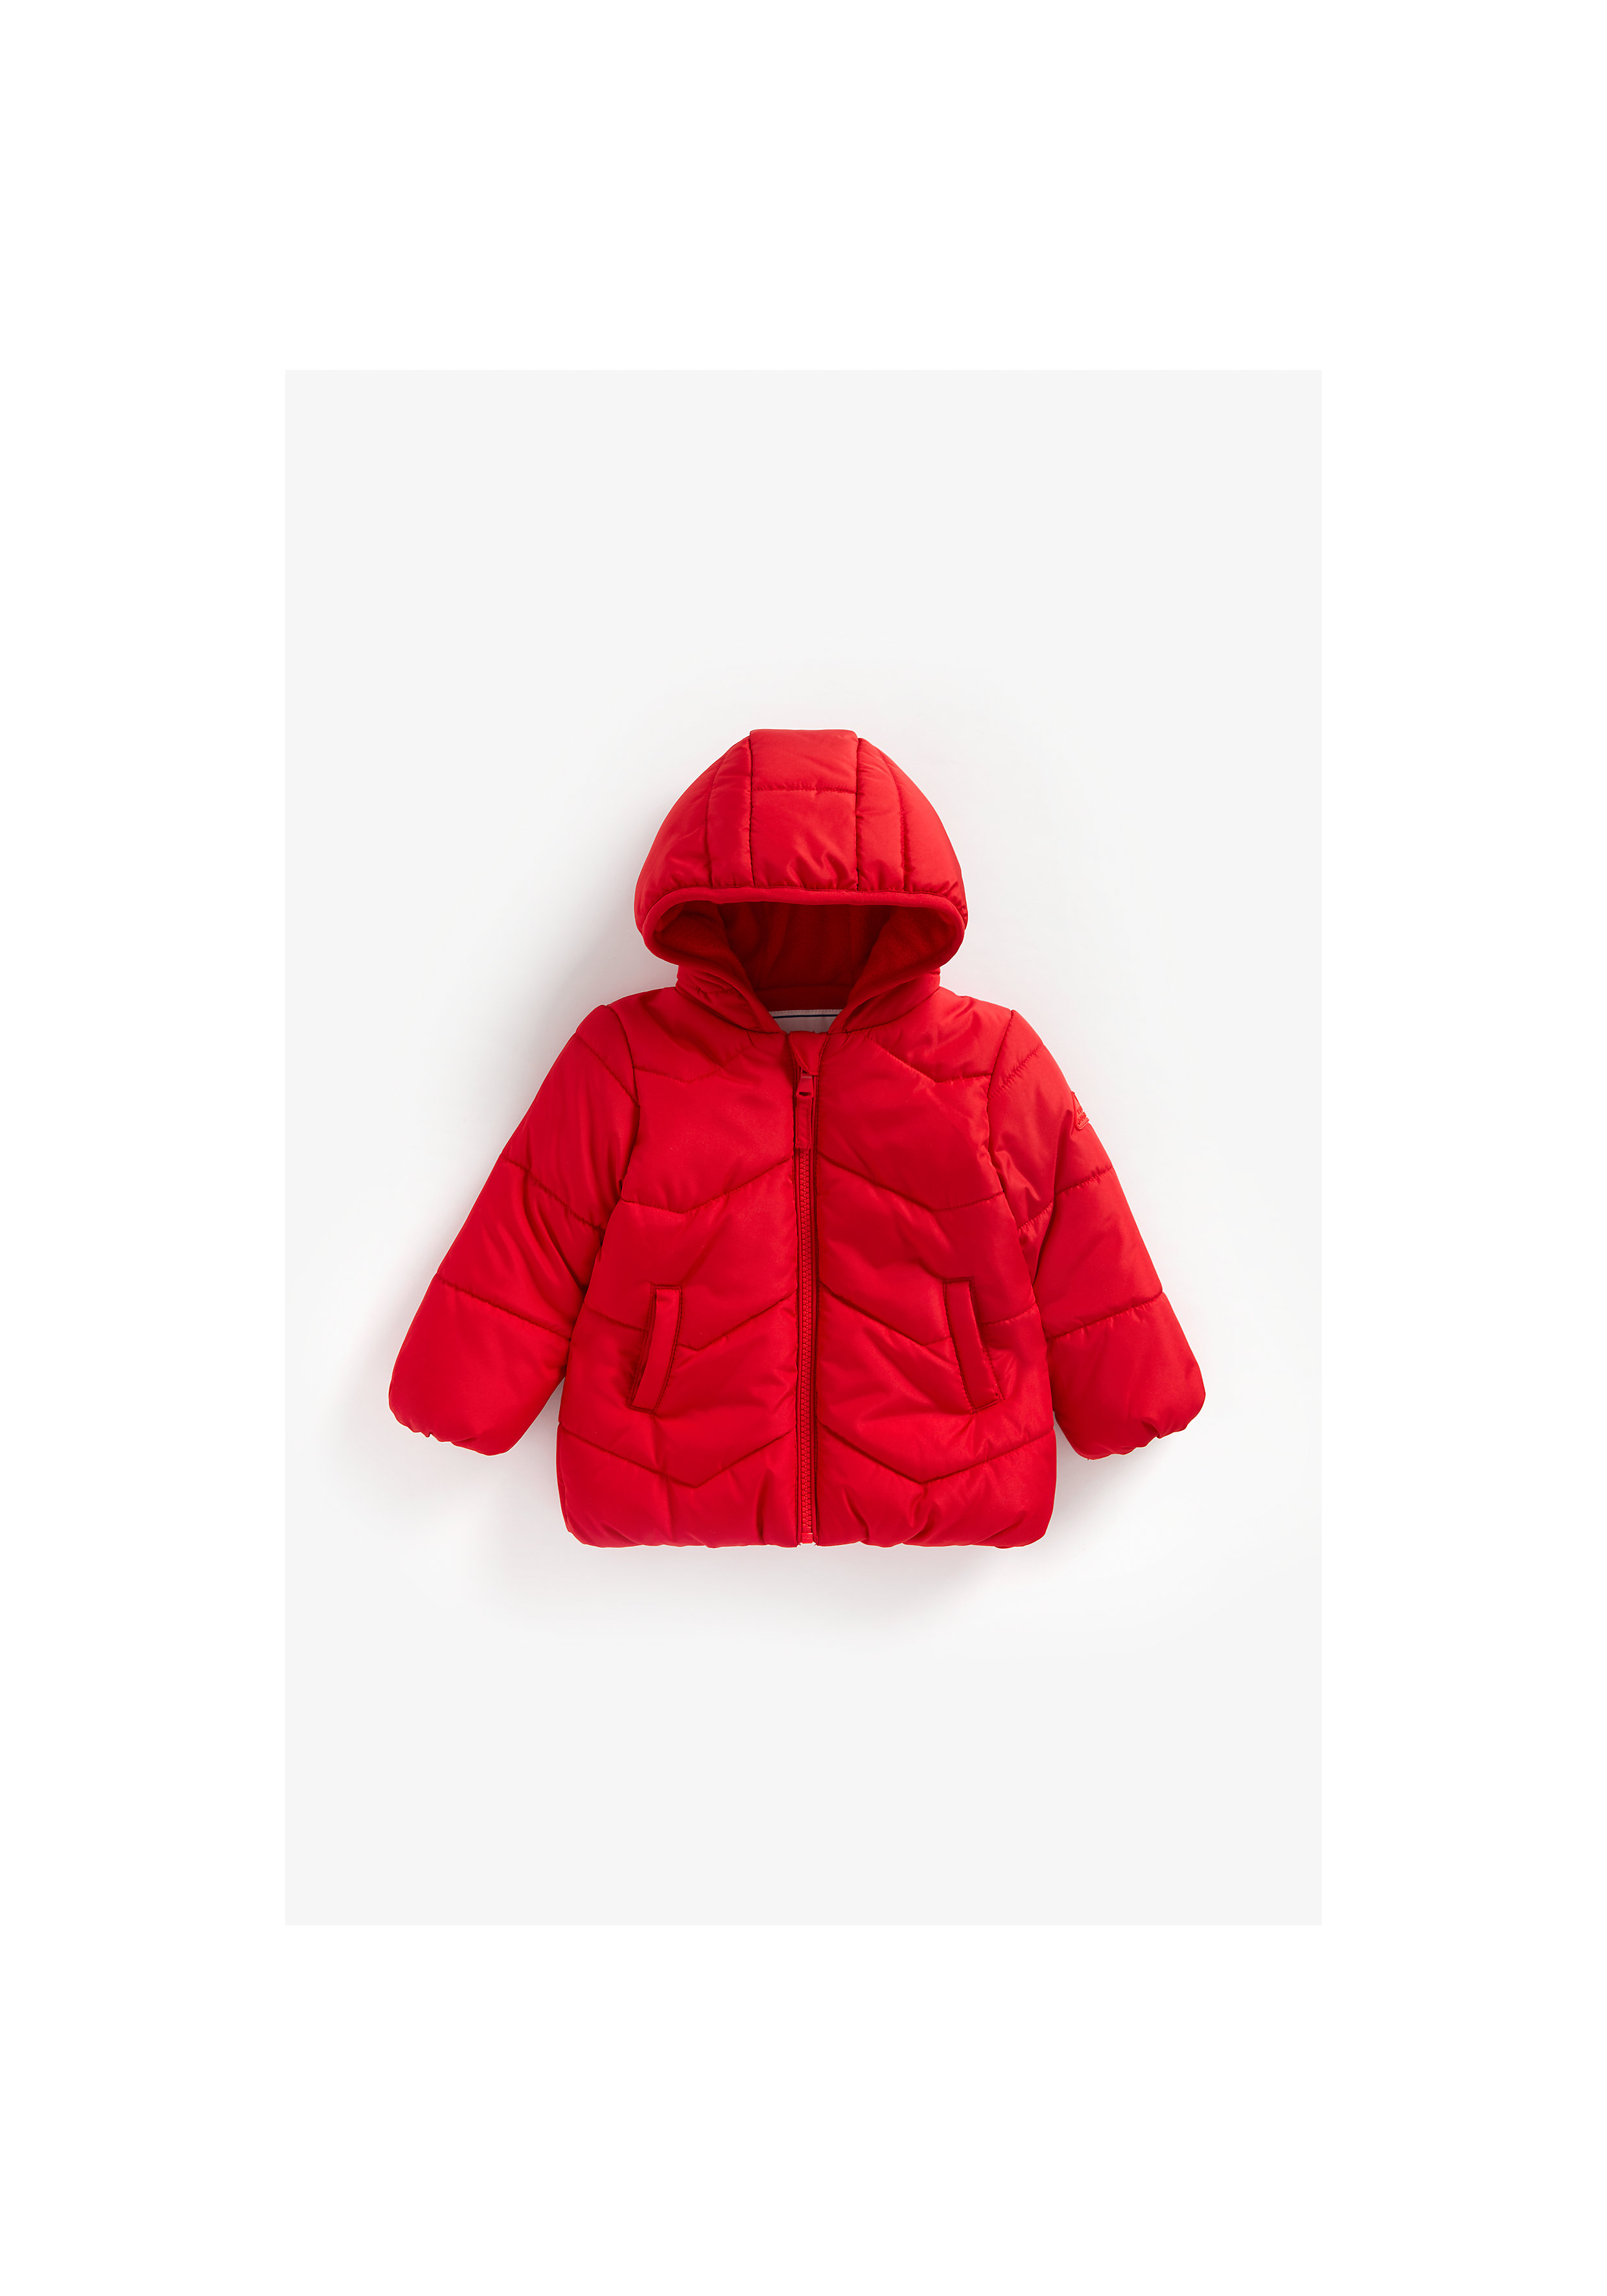 Mothercare | Boys Full Sleeves Fleece Lined Quilted Jacket Hooded - Red